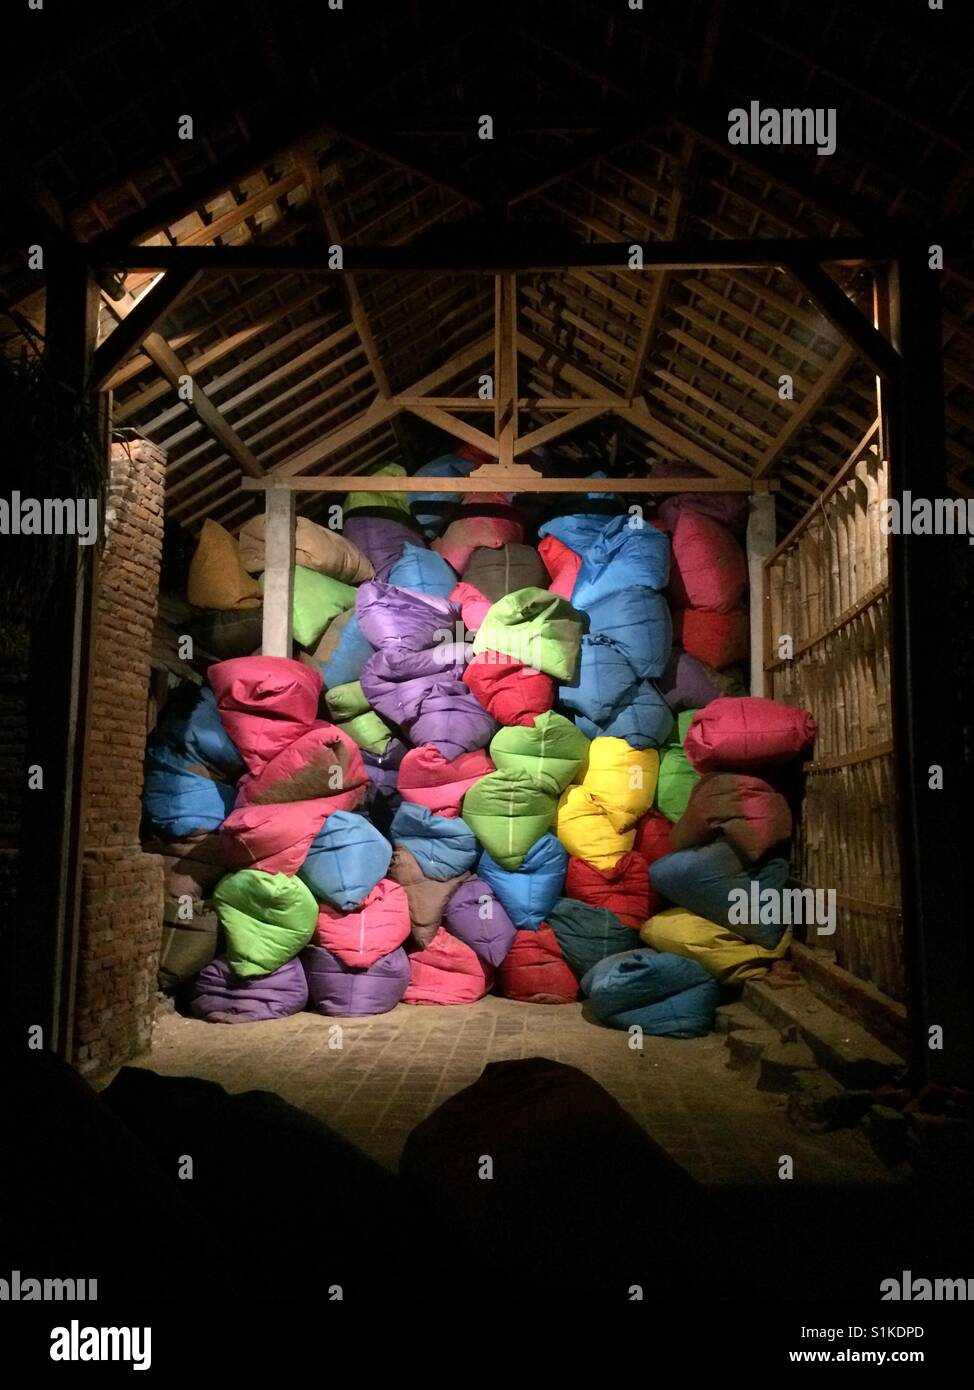 Colorful beanbags - Stock Image